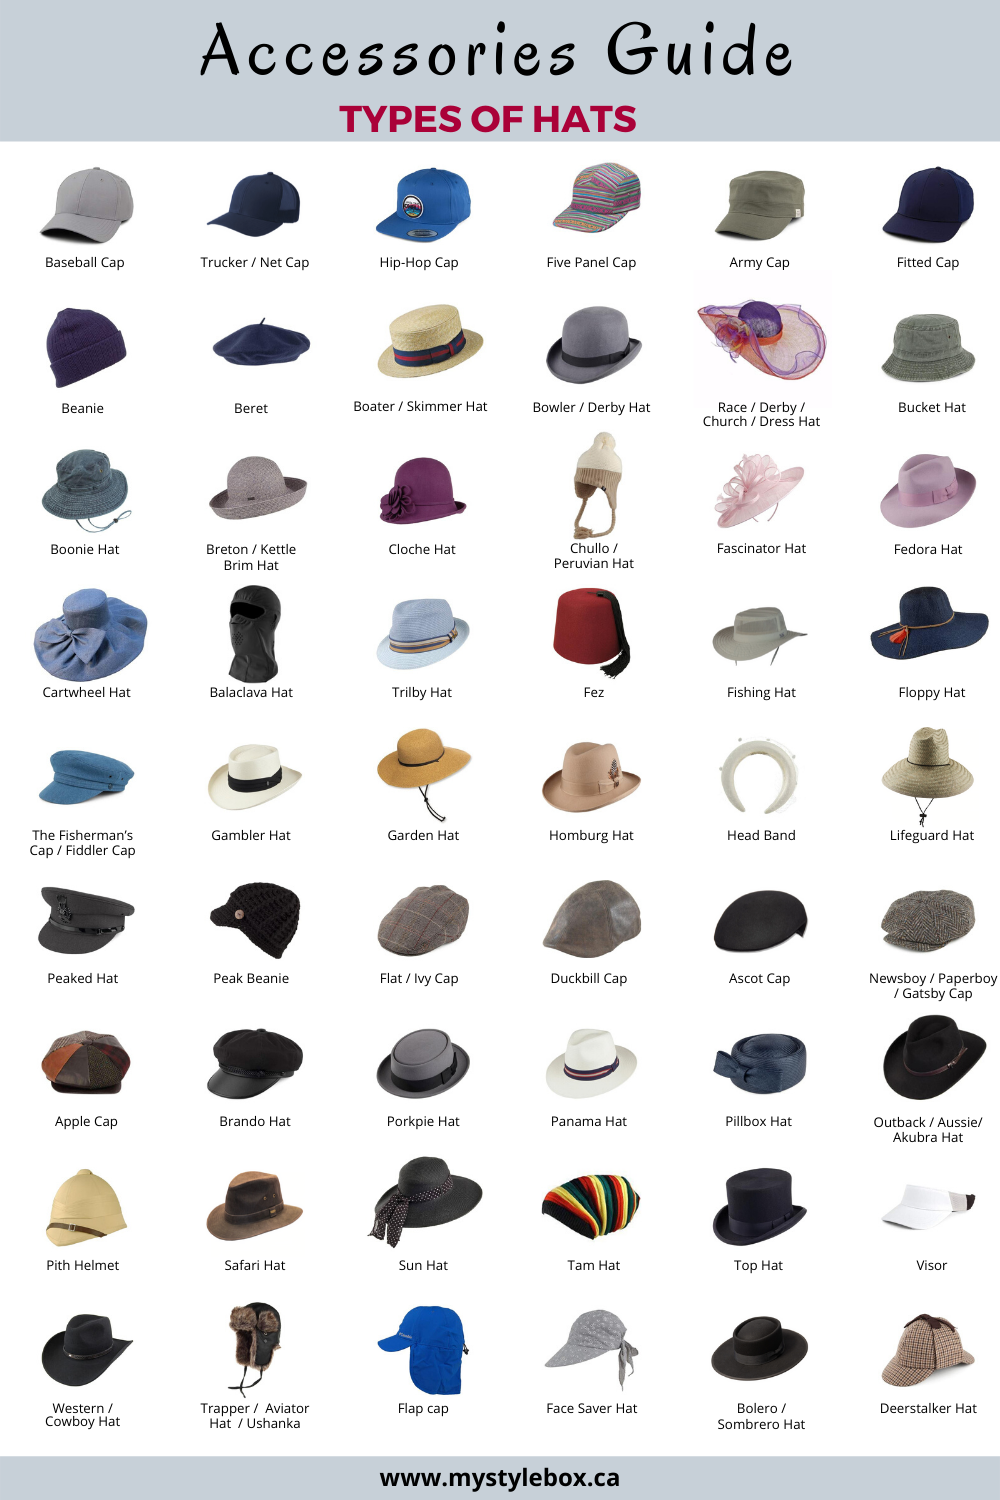 Types of Hats